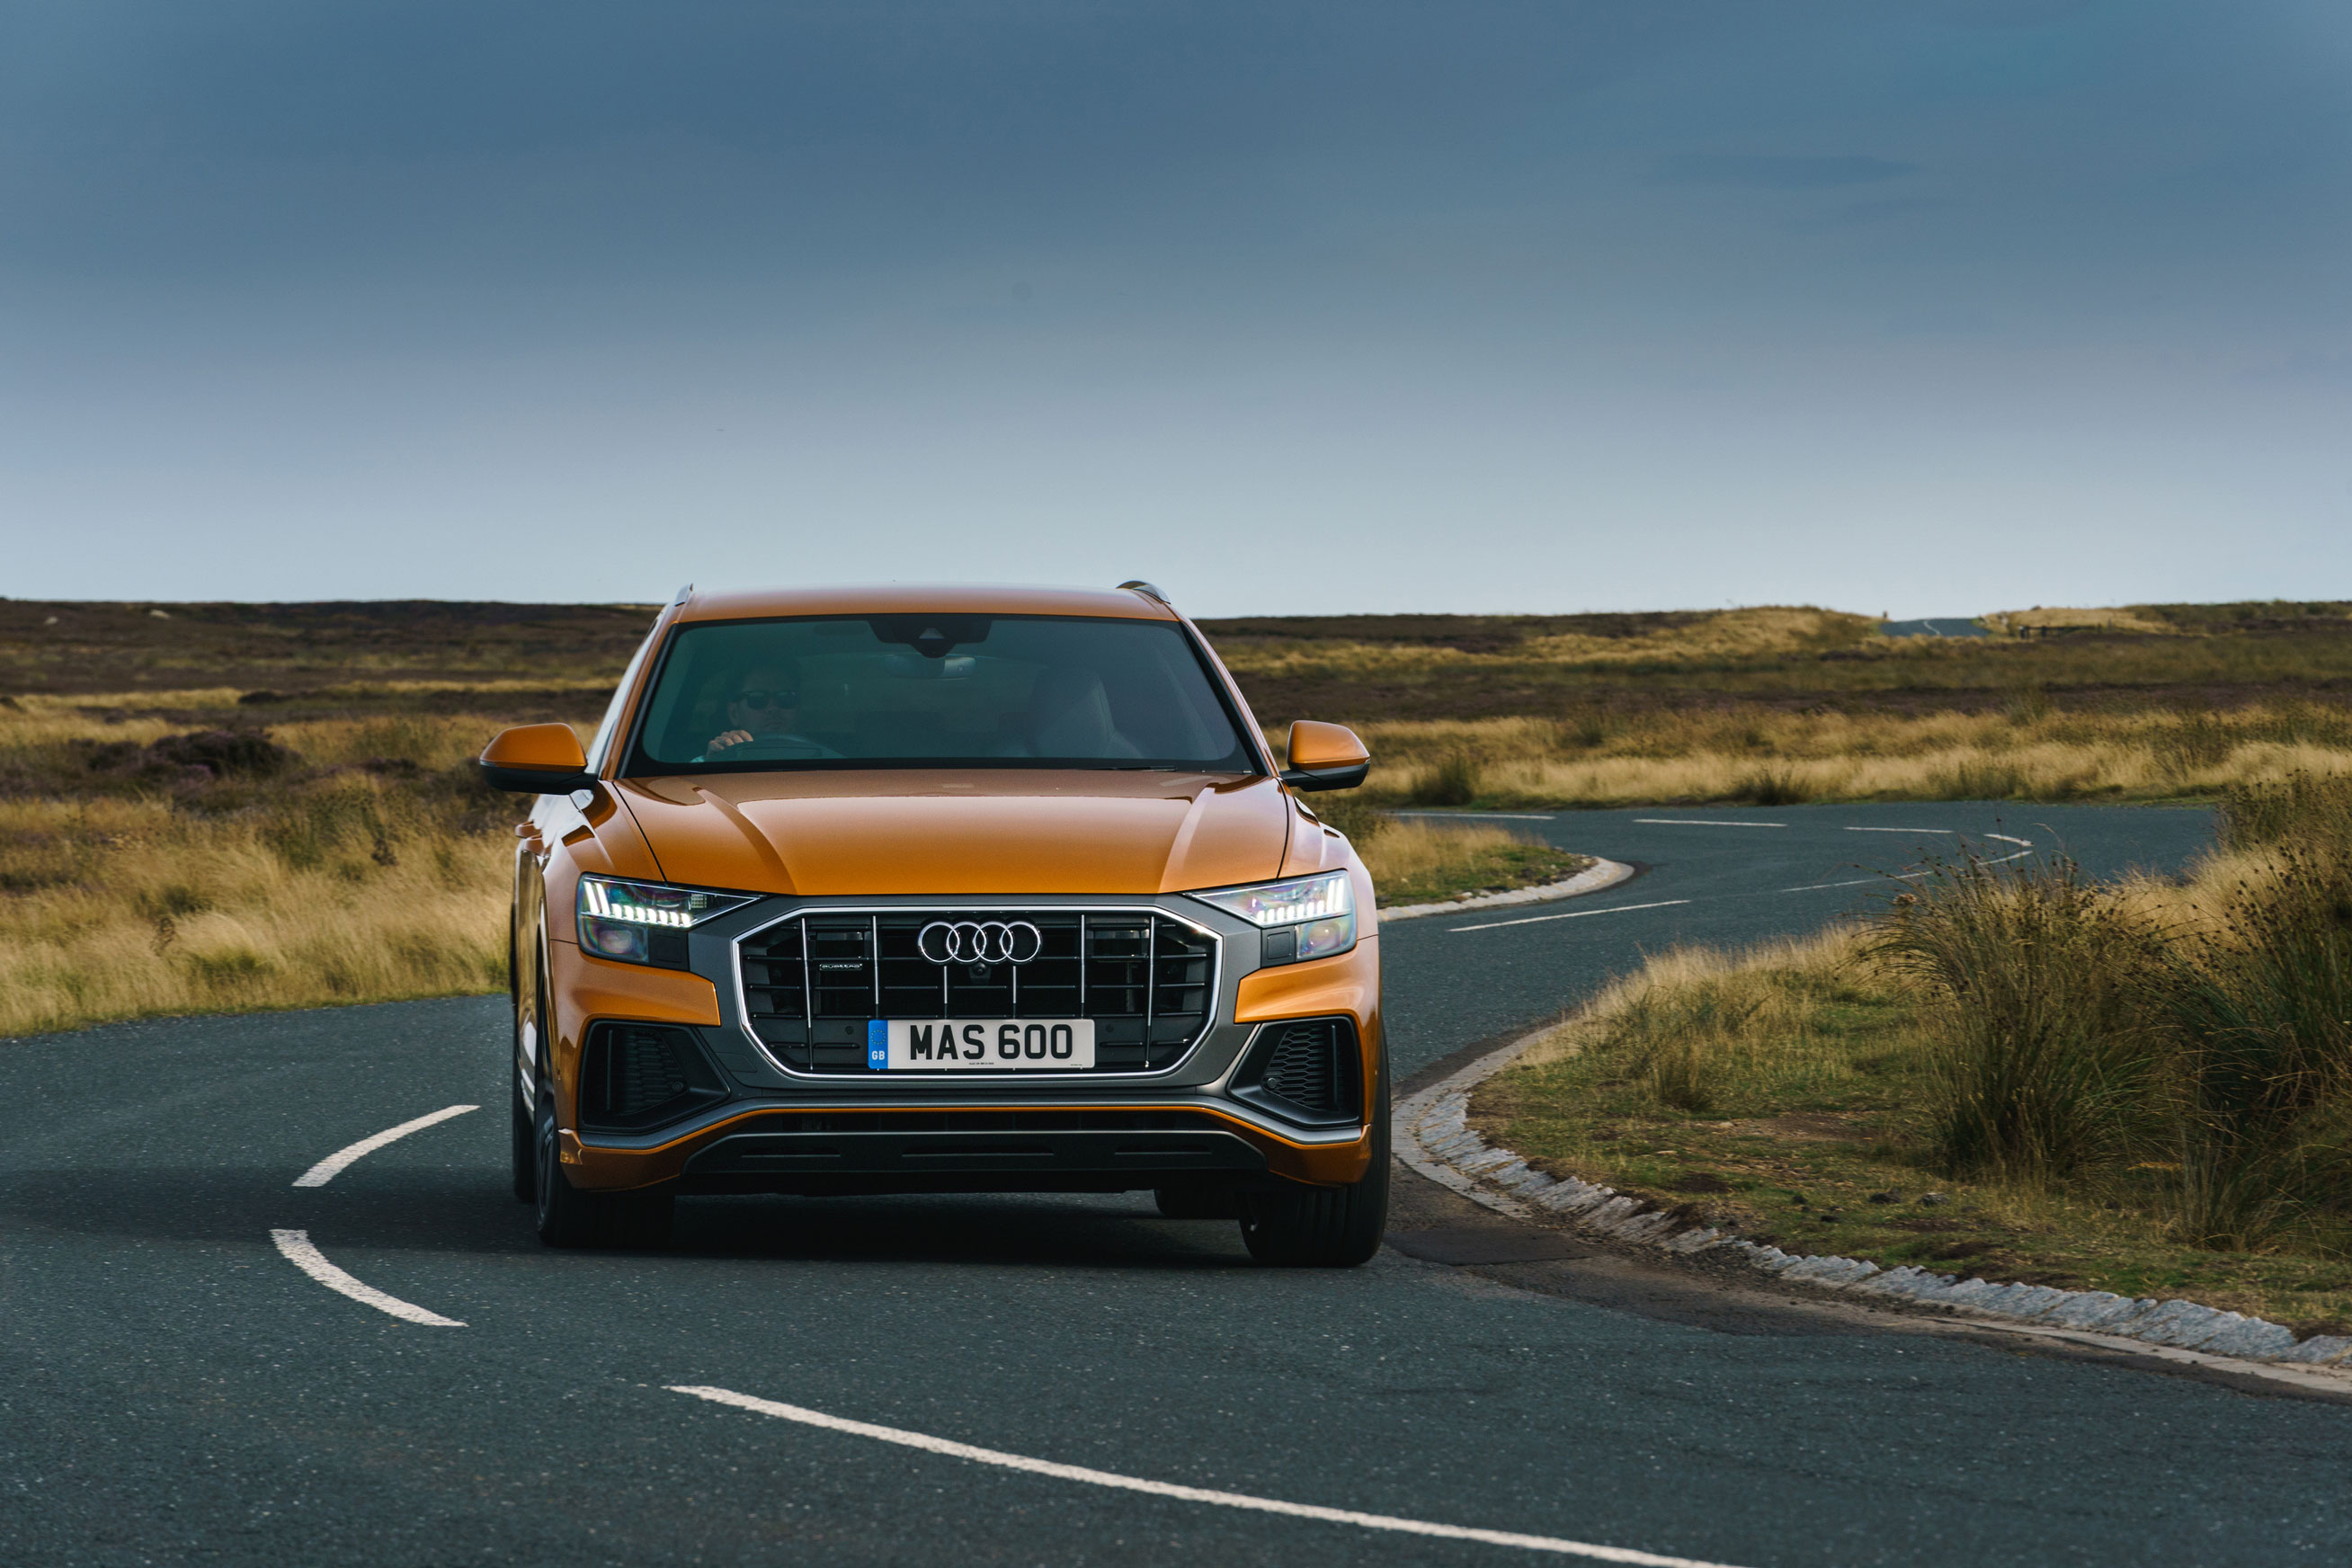 Audi Rs7 0-60 >> Audi Q8 review – a master of comfort and refinement ...